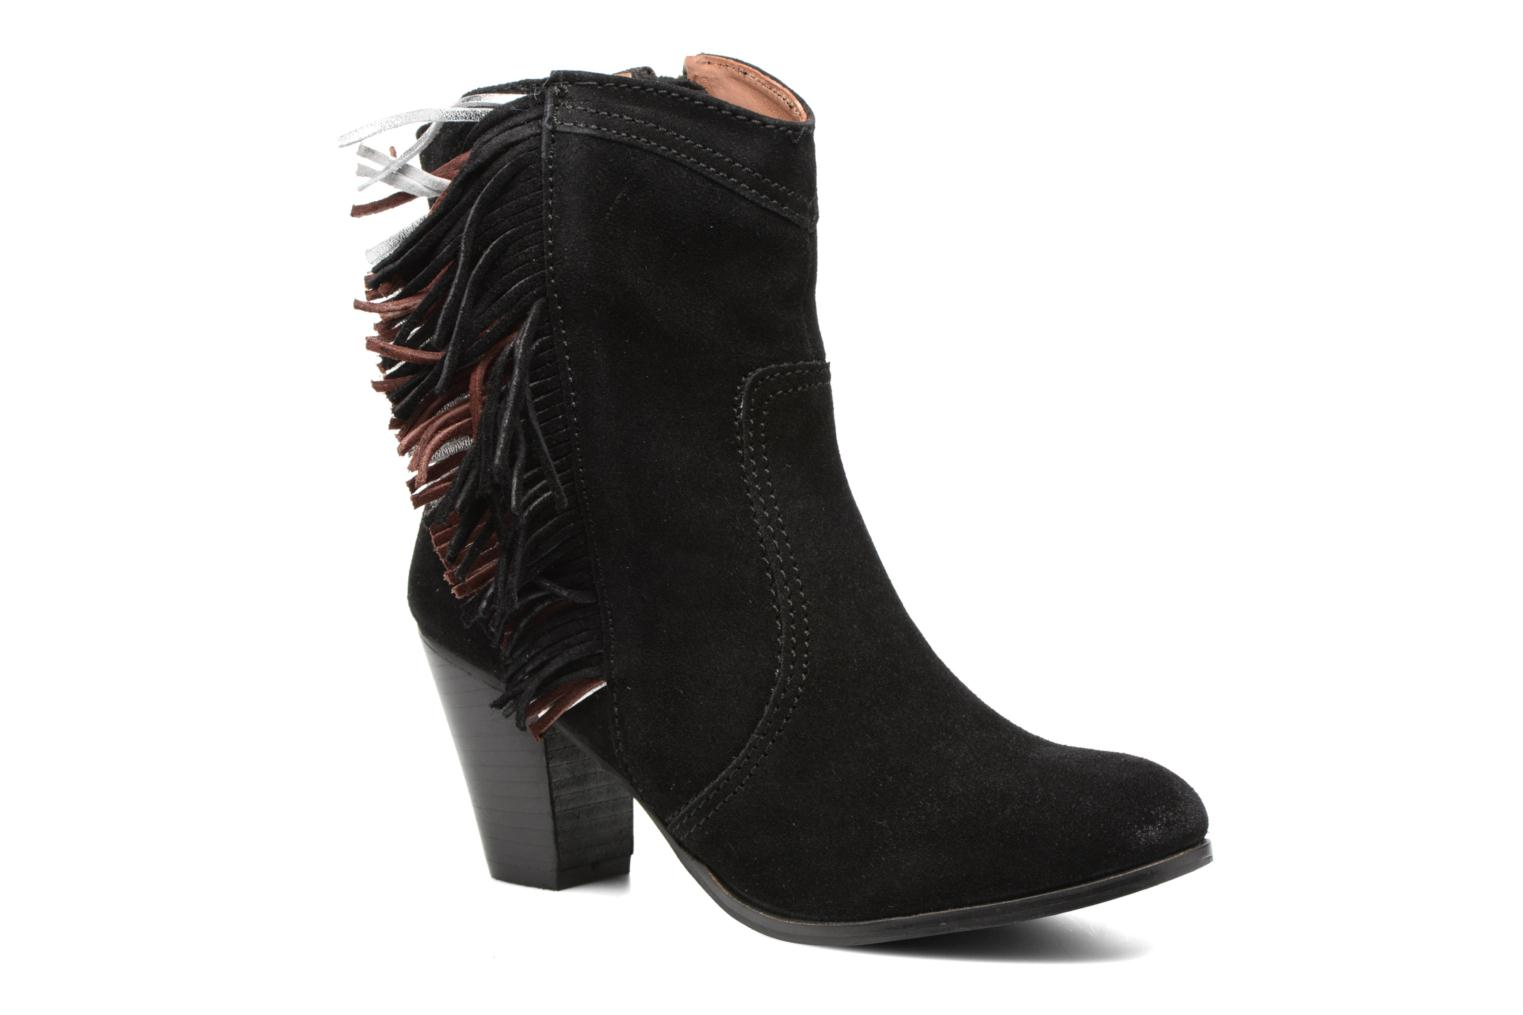 Bottines et boots Gioseppo Hoover pour Femme 1PCNep9Y